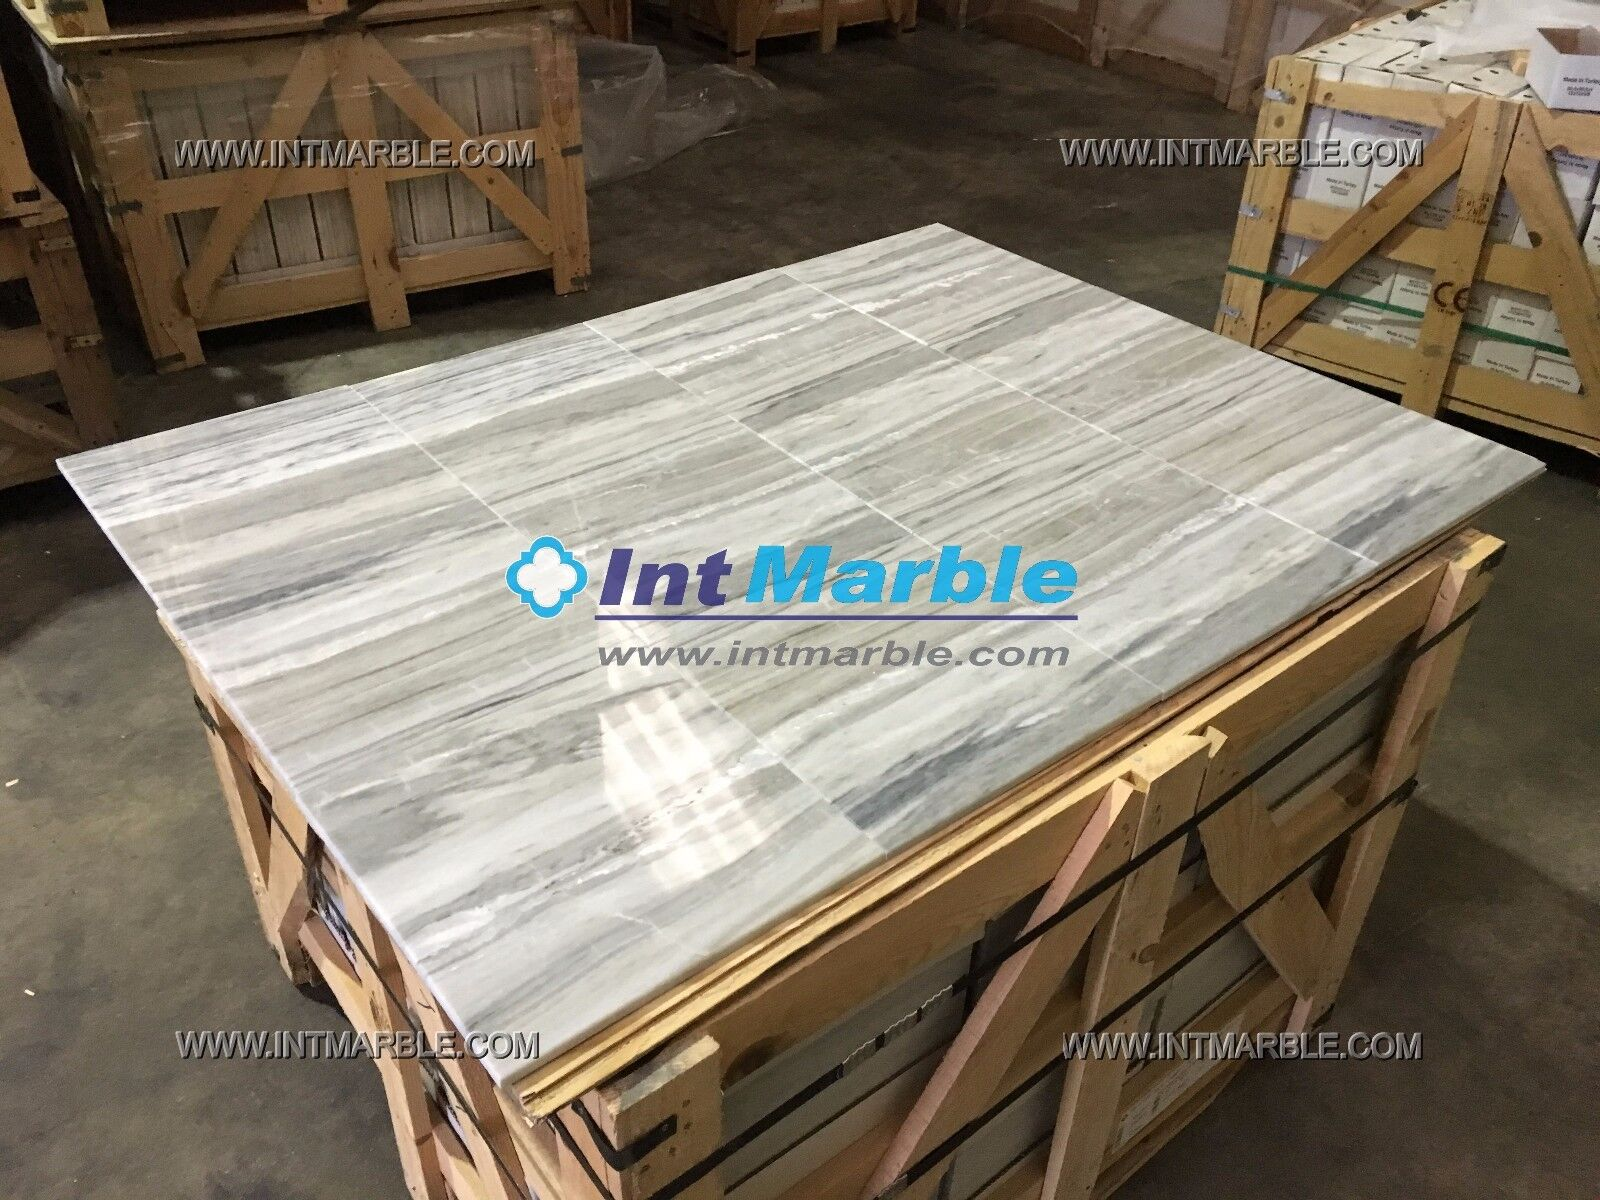 Marble Tiles Palissandro Blau, Polished Luxury Marble Tile Floor Wall TraGrünine